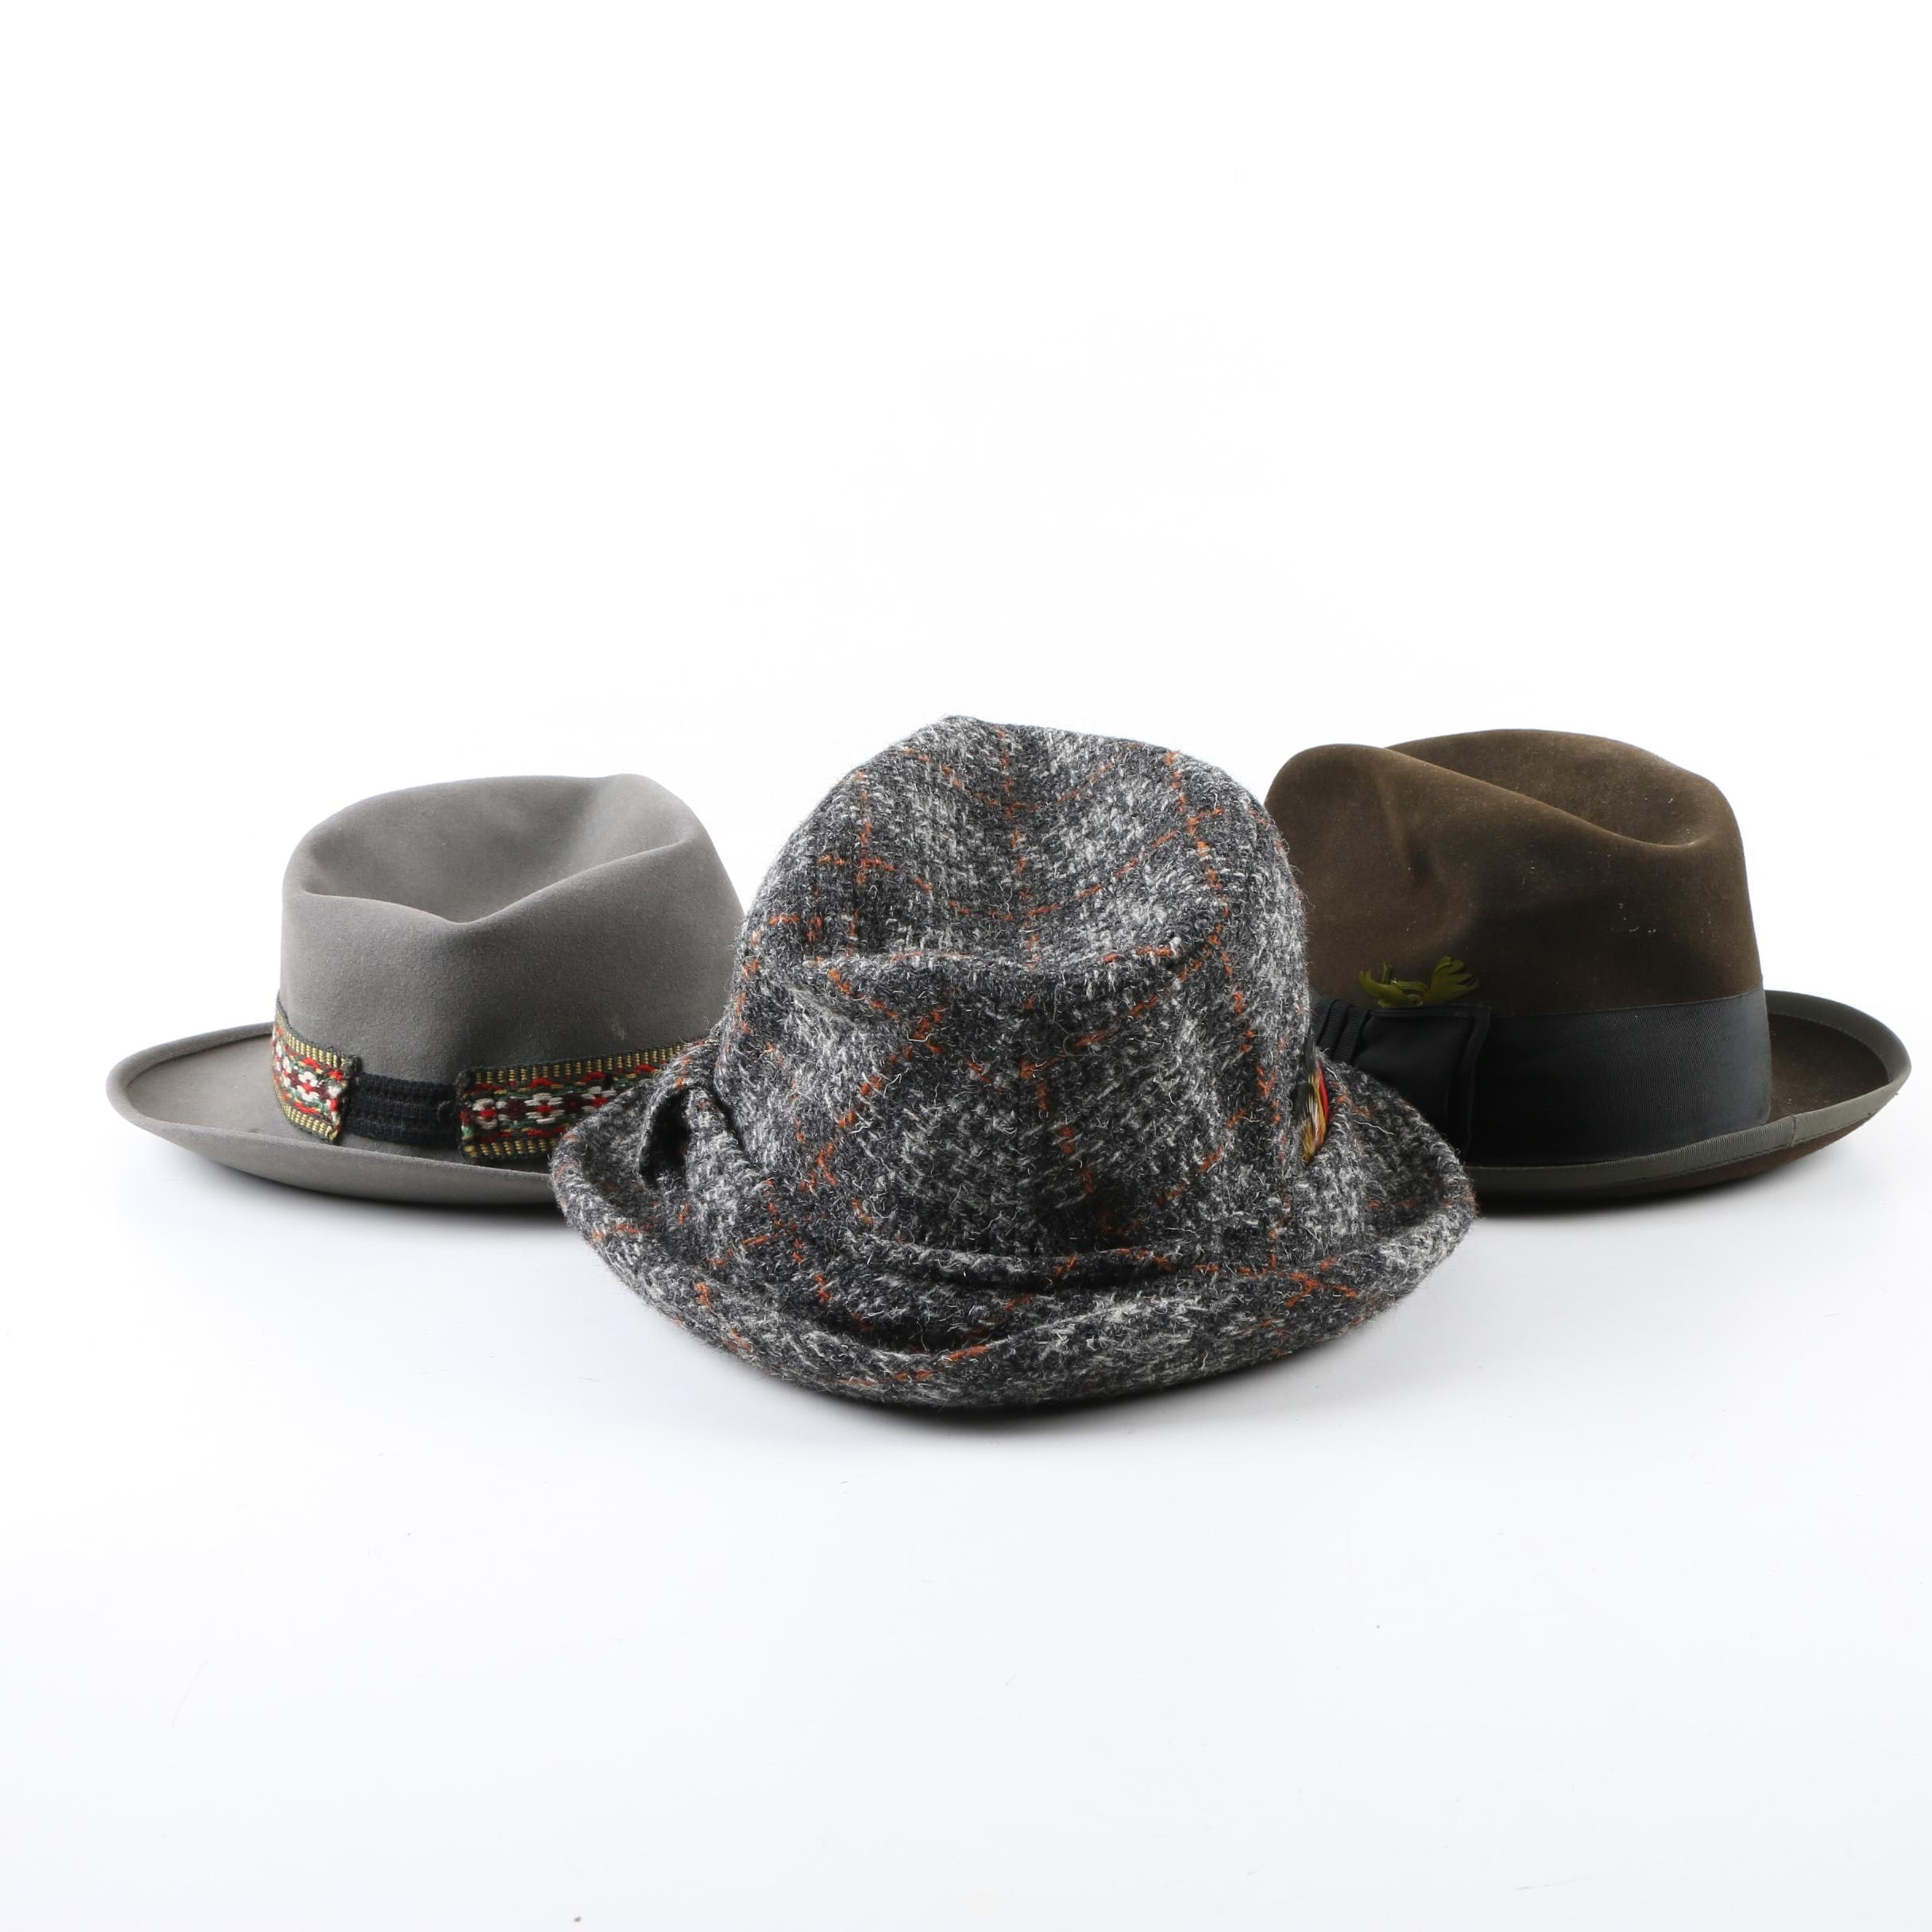 Men's Vintage Fedoras Including Dobbs Challenger and Knox